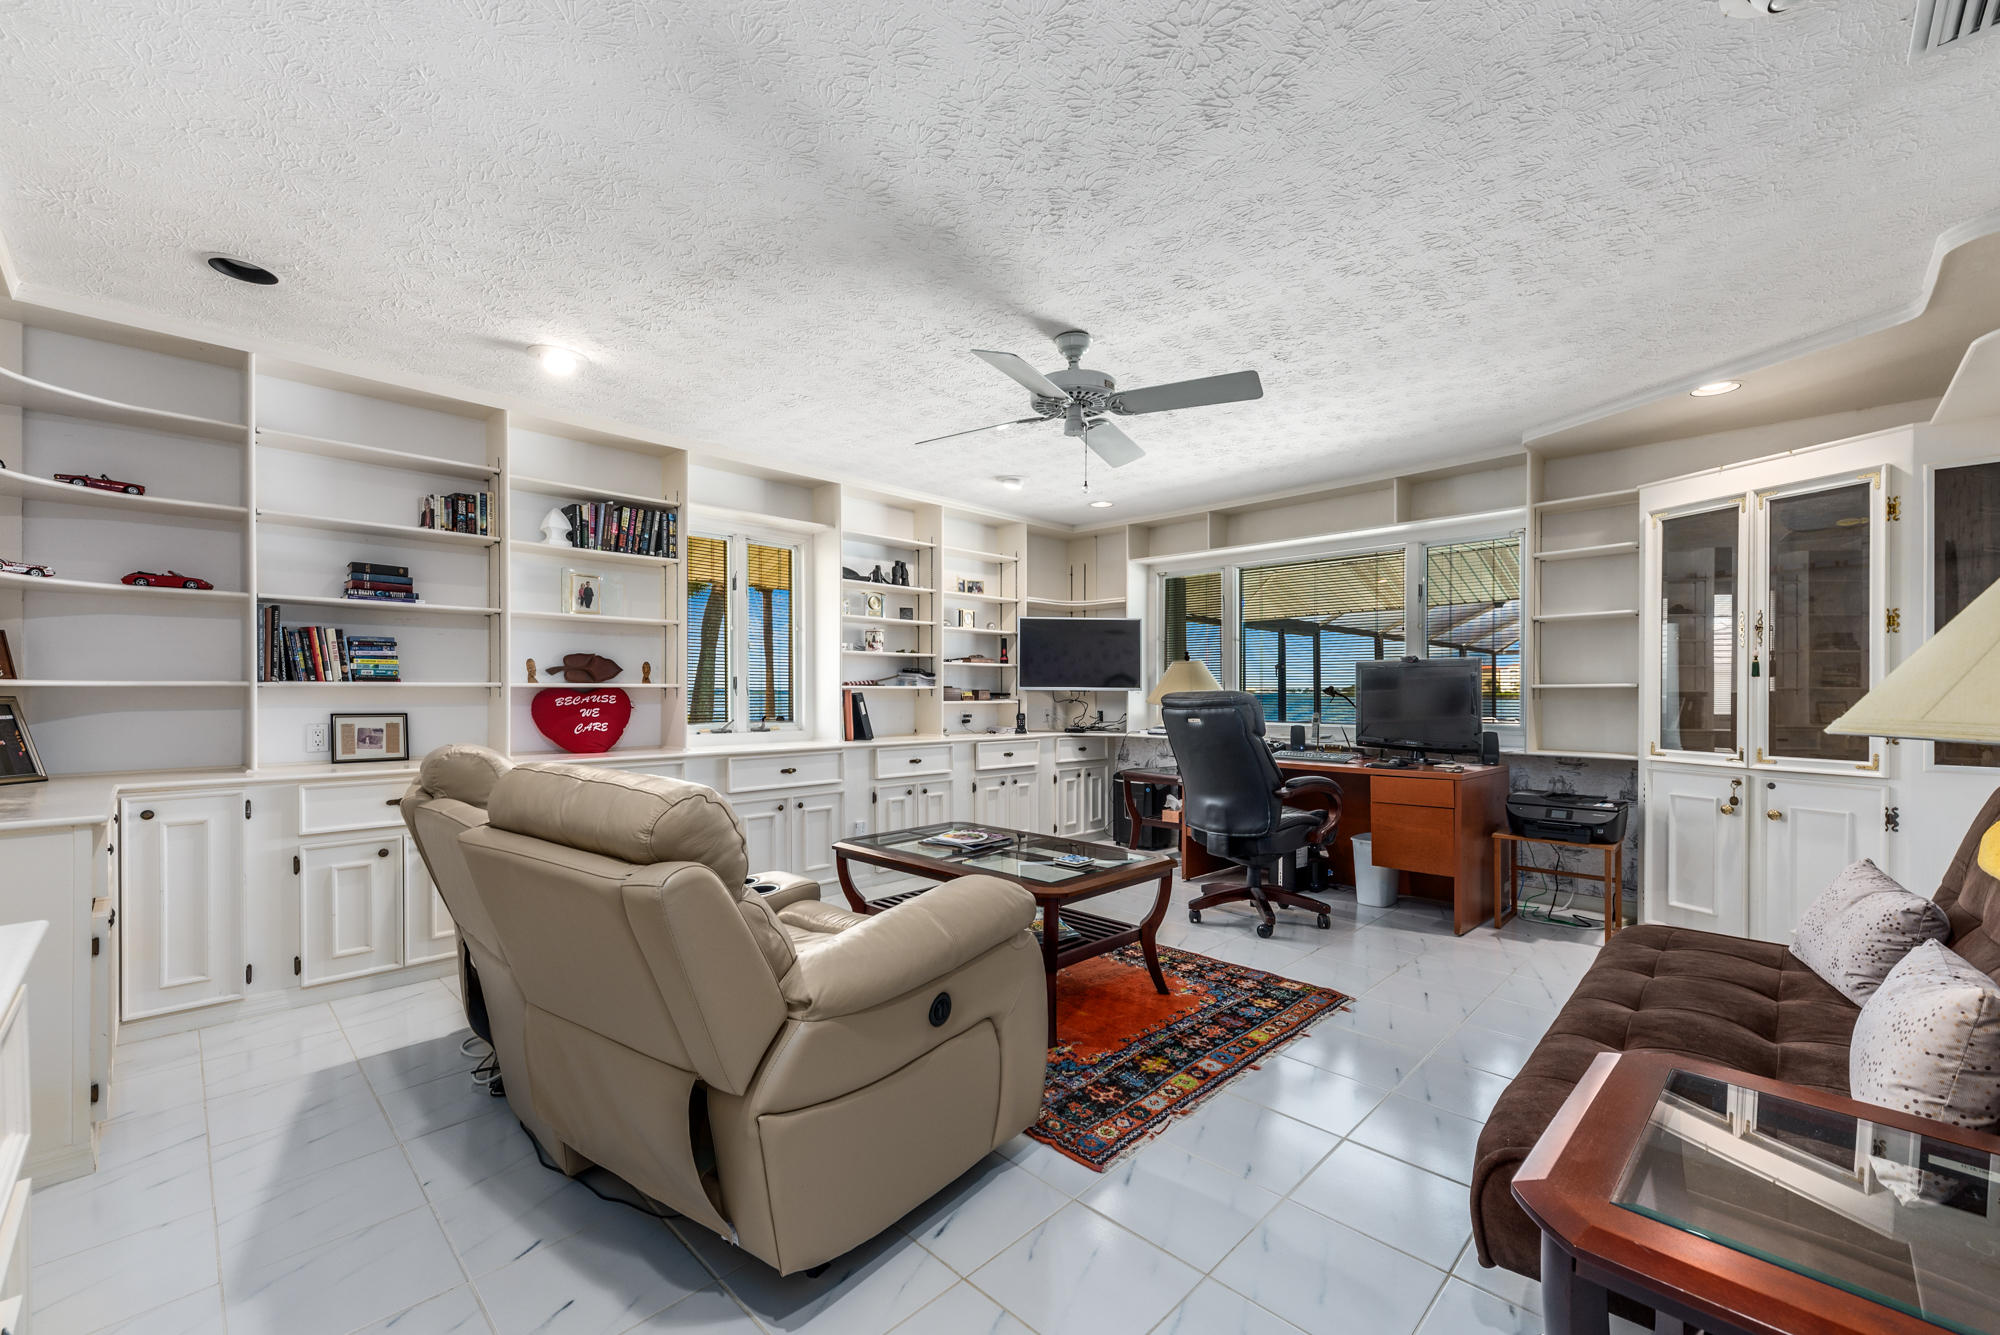 THUMB POINT HOMES FOR SALE